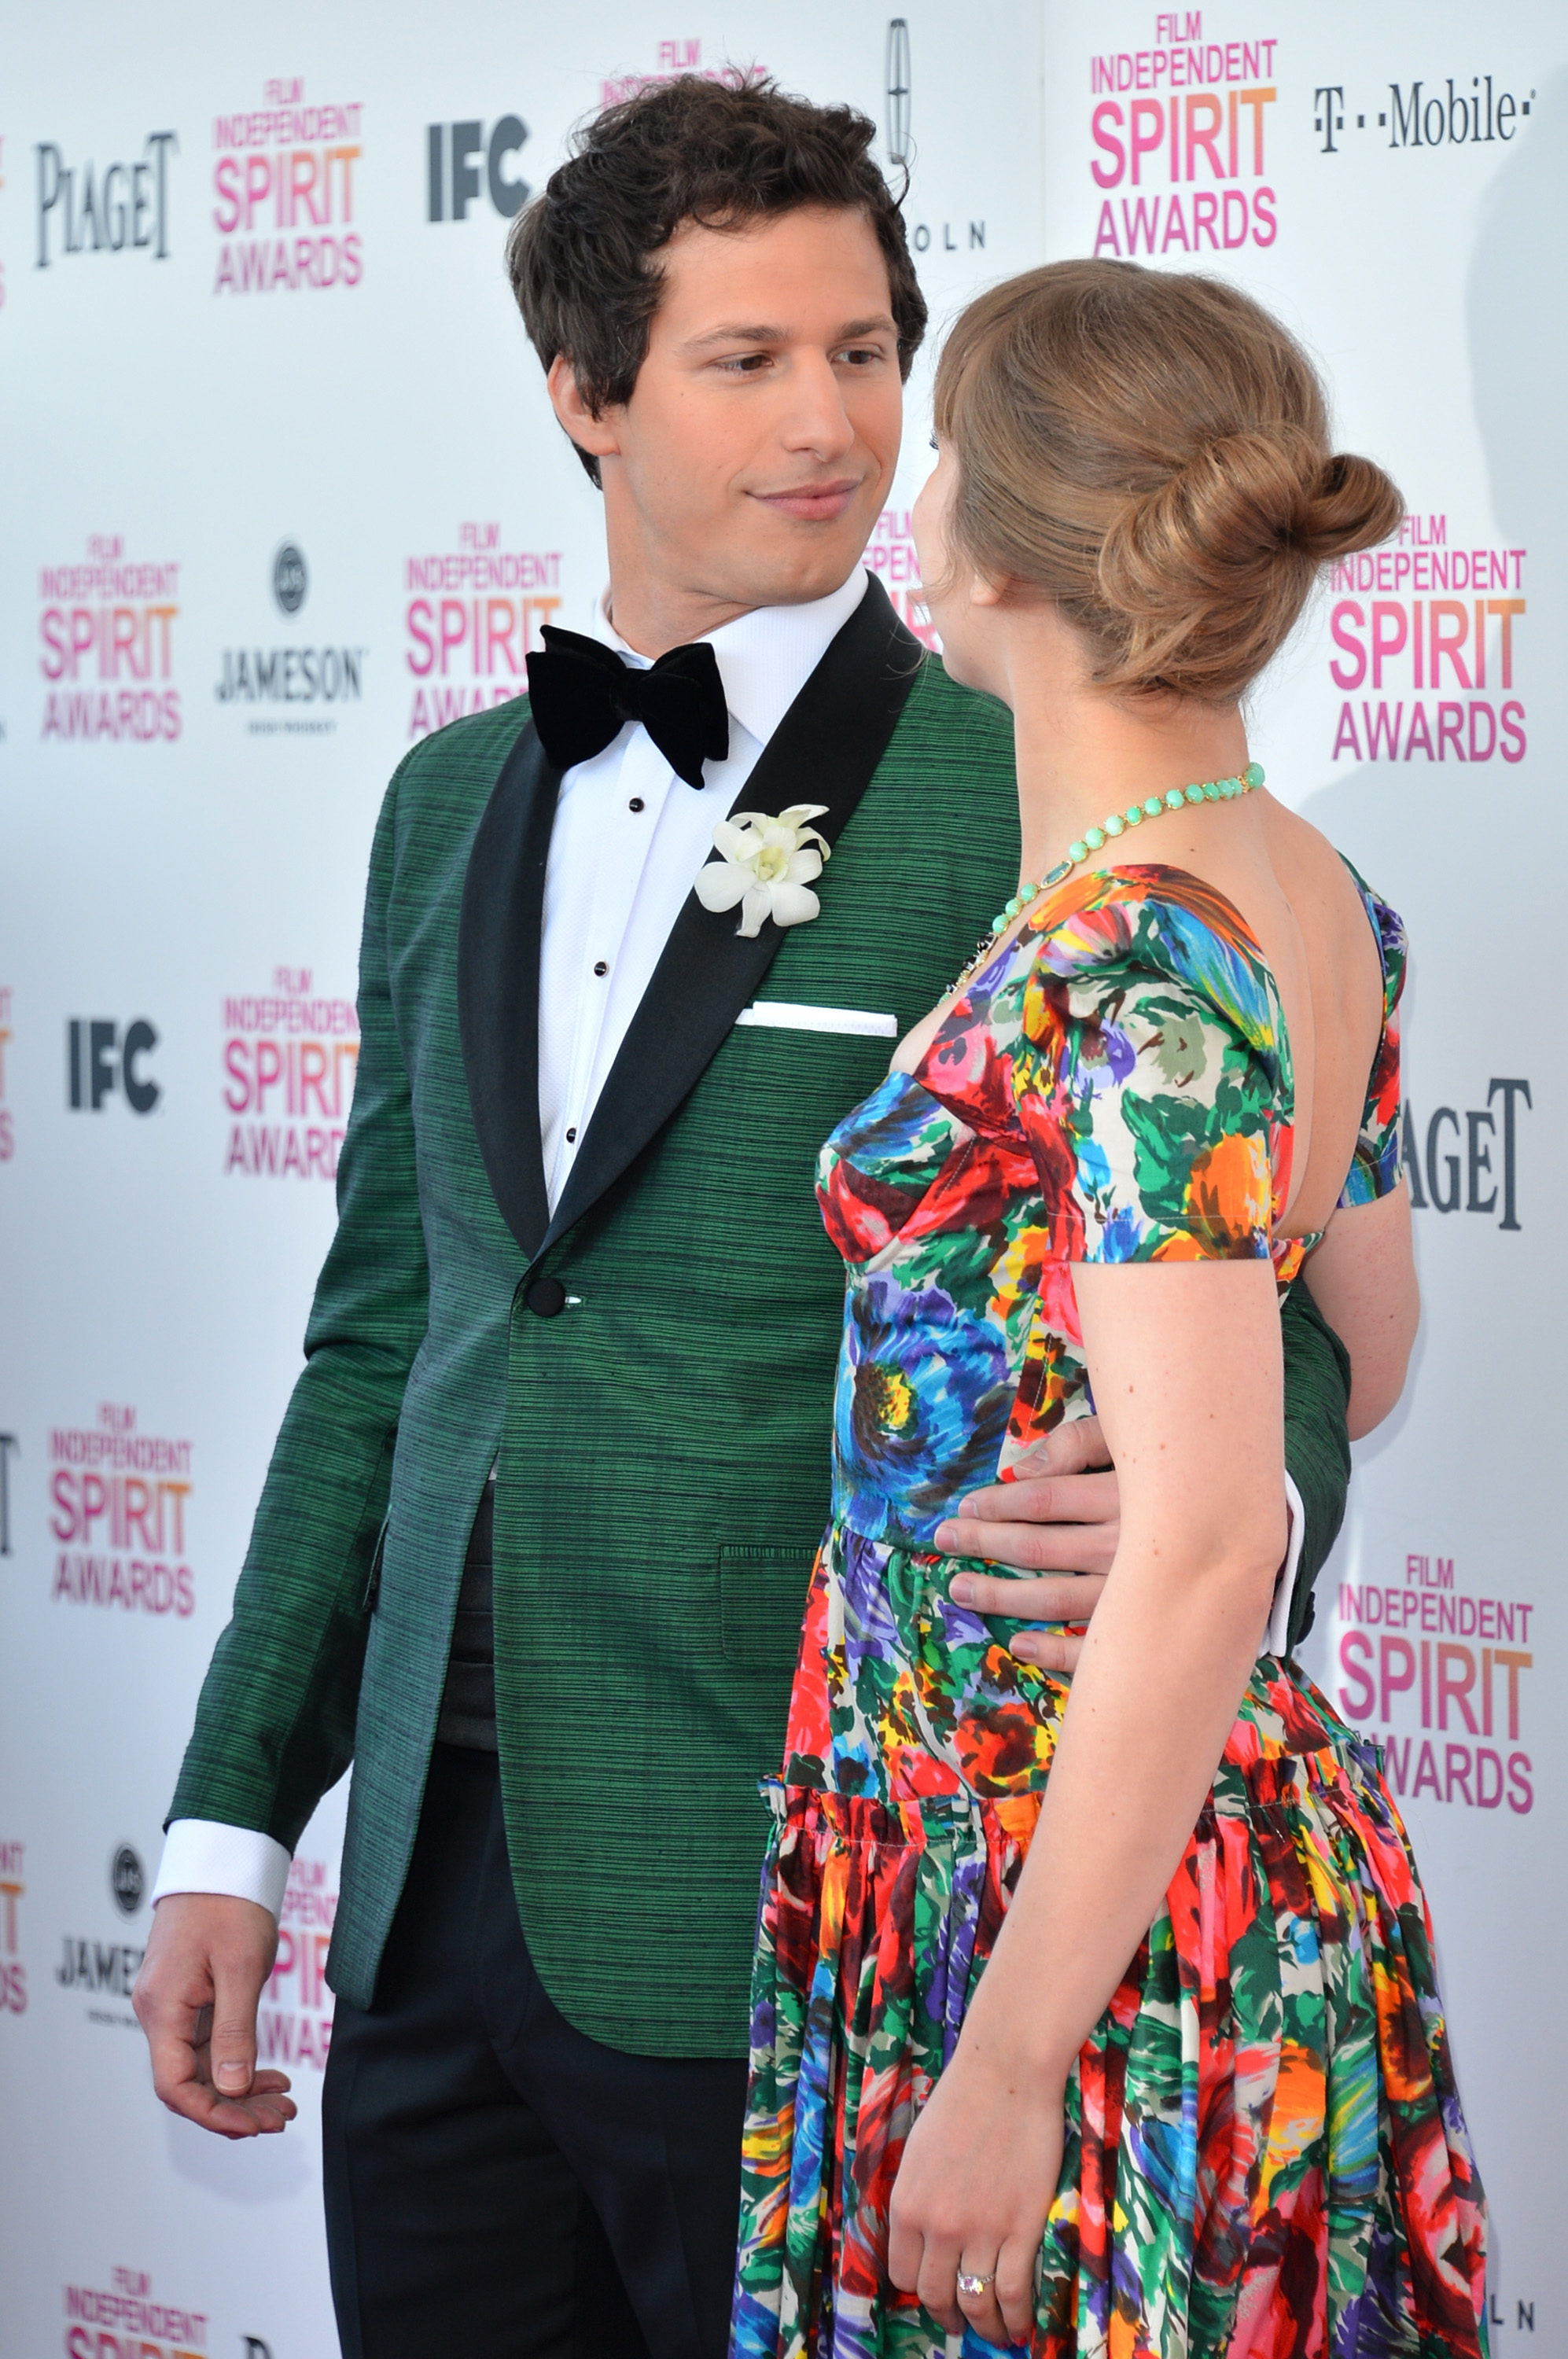 Andy Samberg and Joanna Newsom on